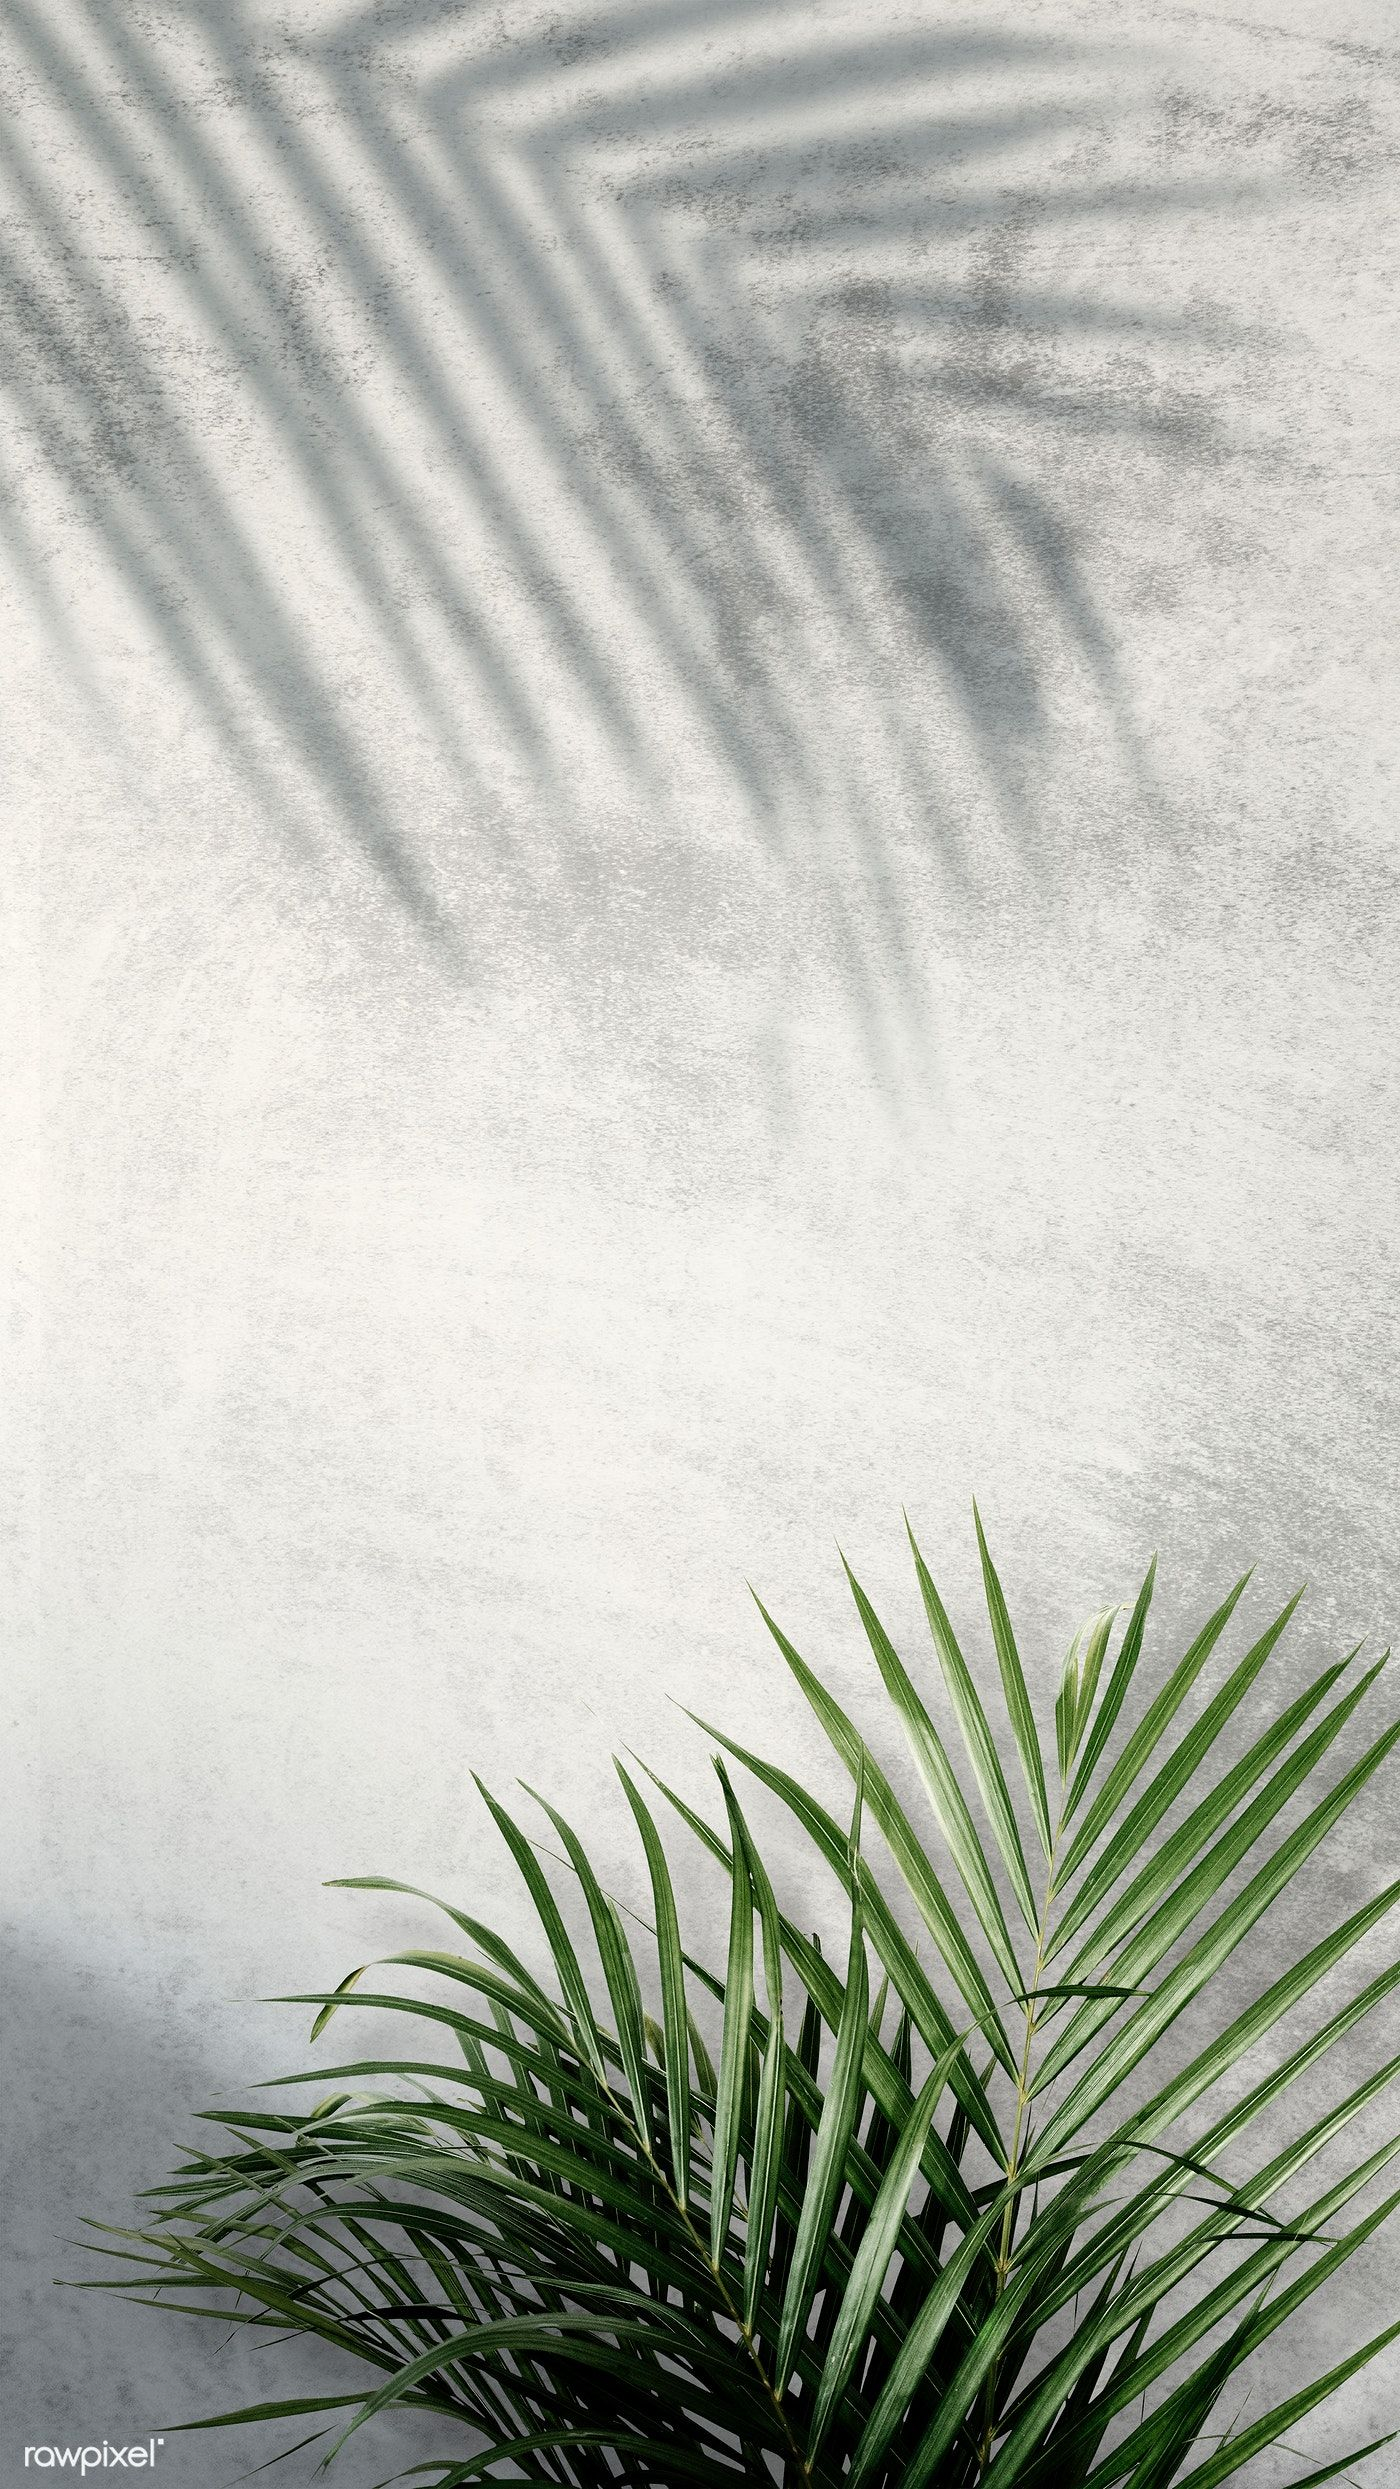 Download premium psd of Areca palm shadows on a gray wall 599964